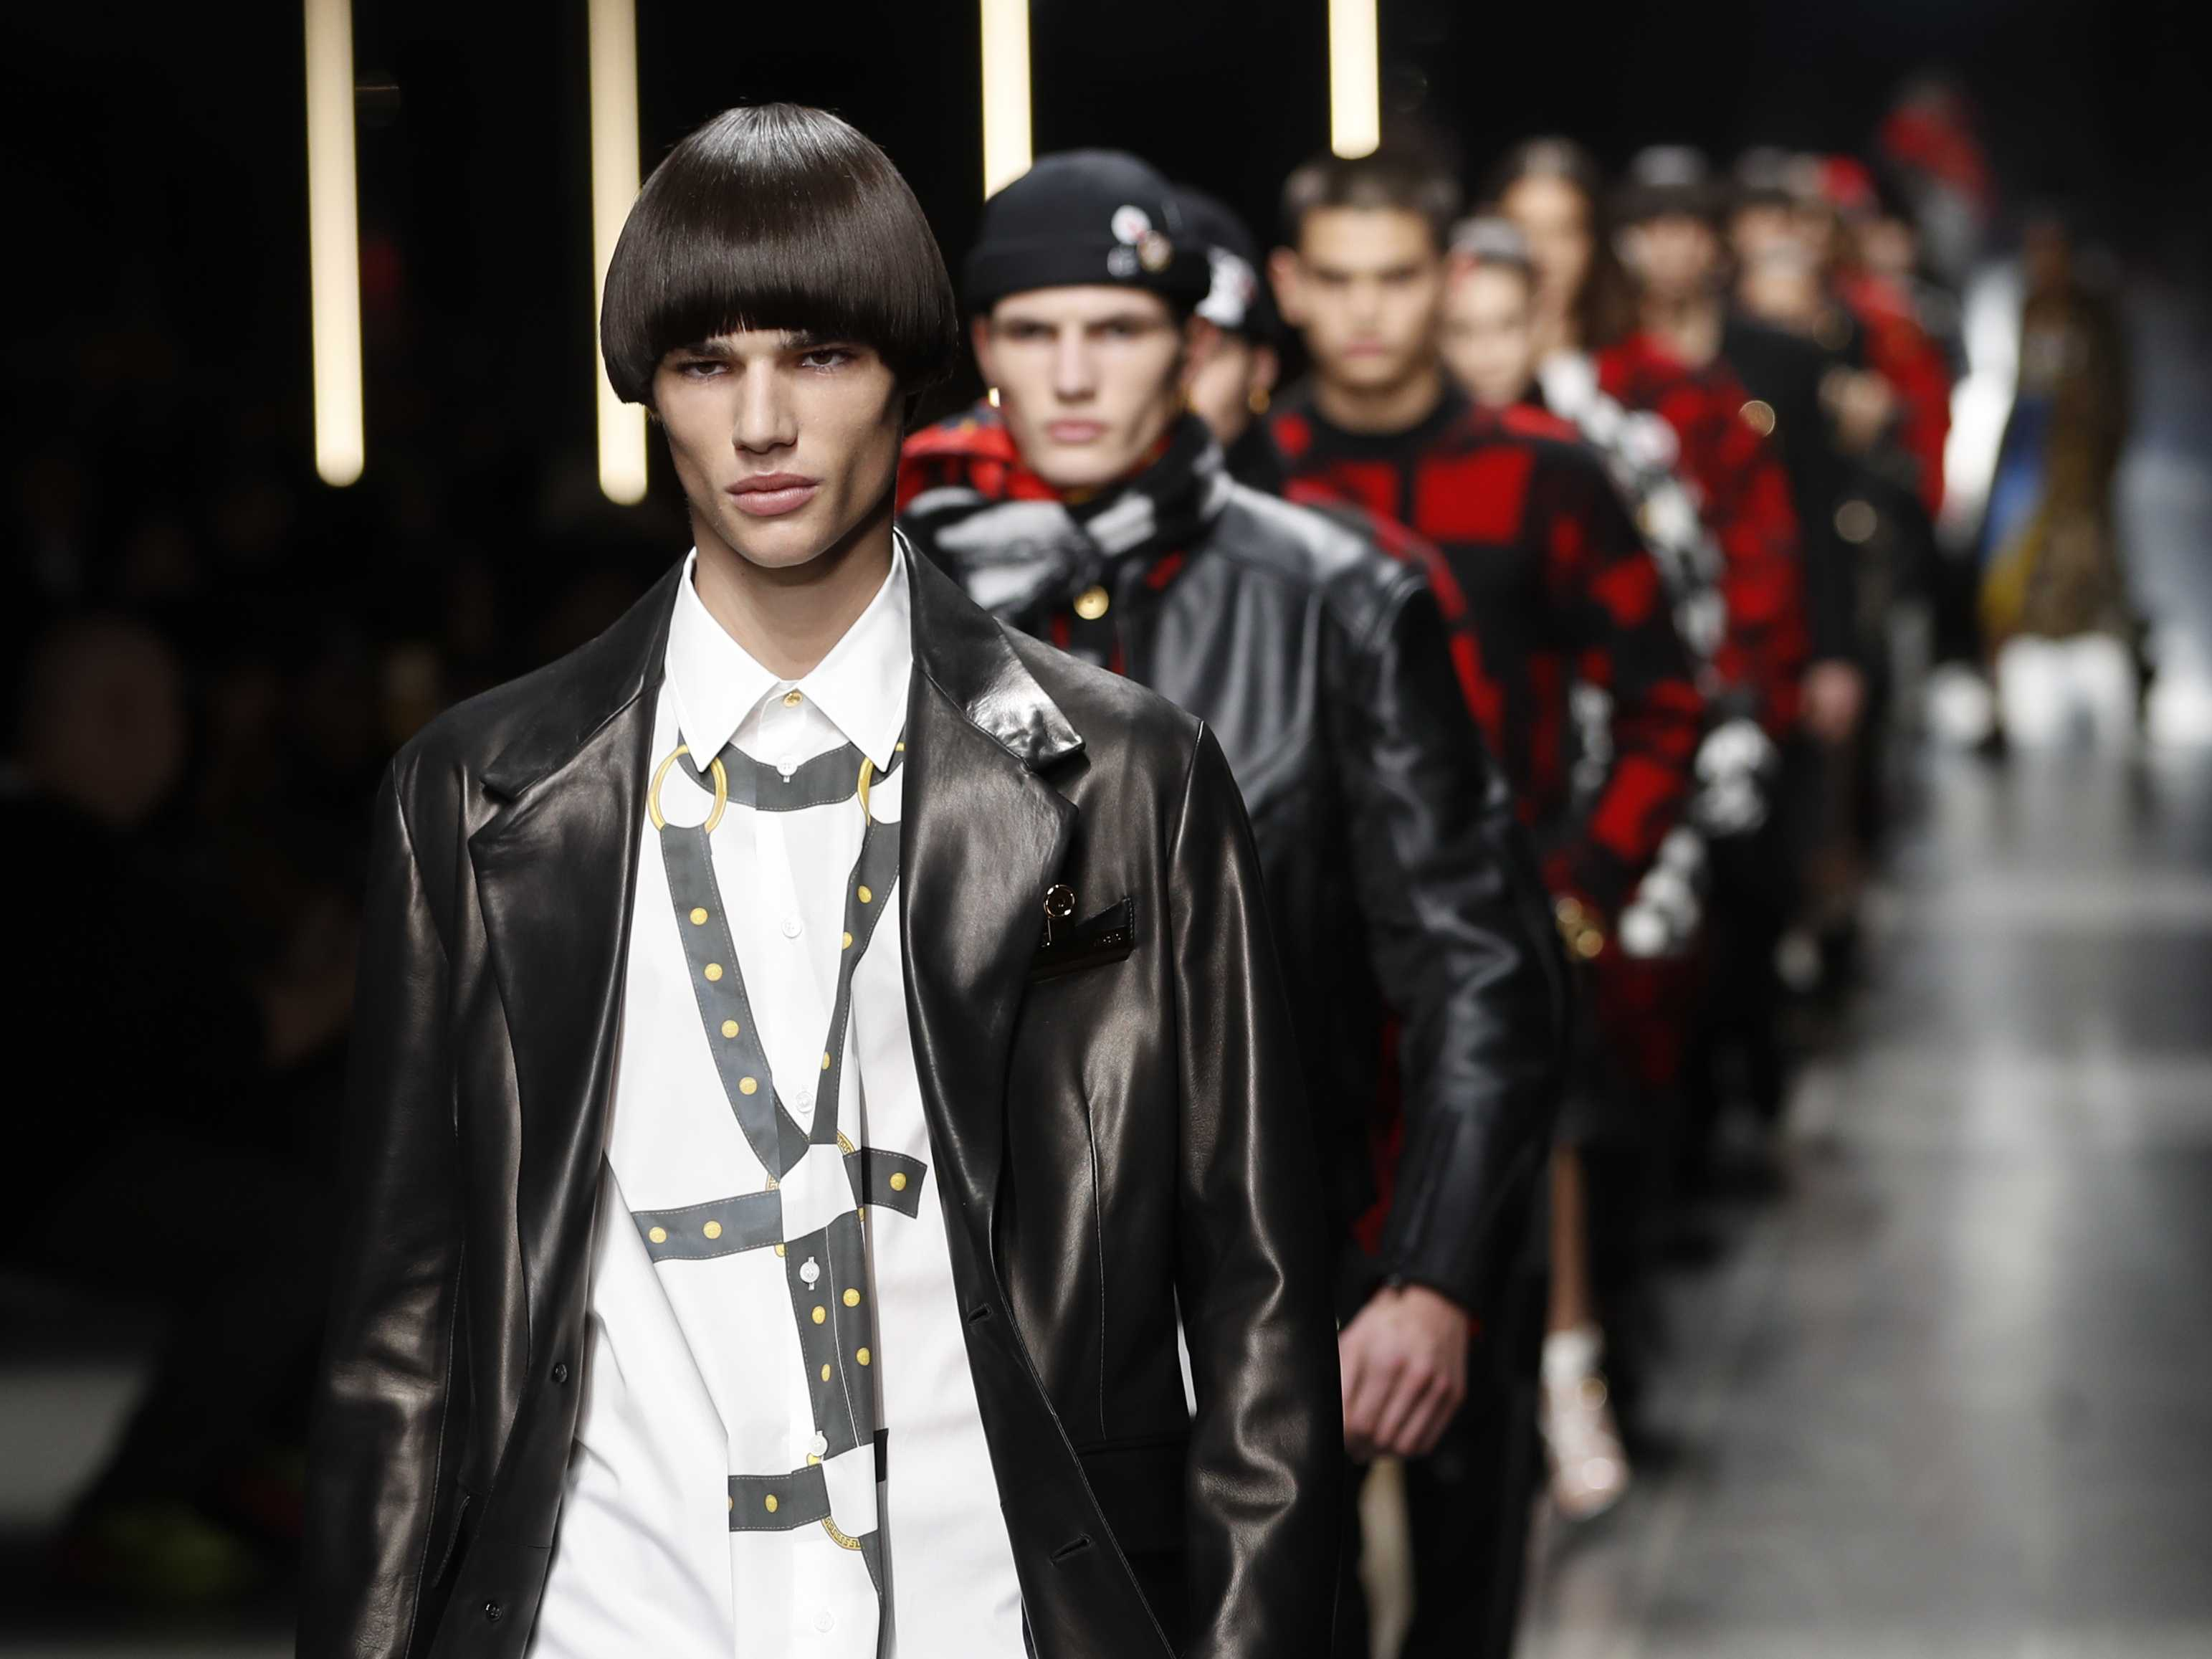 Versace Offers Daring Masculinity; Dolce&Gabbana Go Elegant